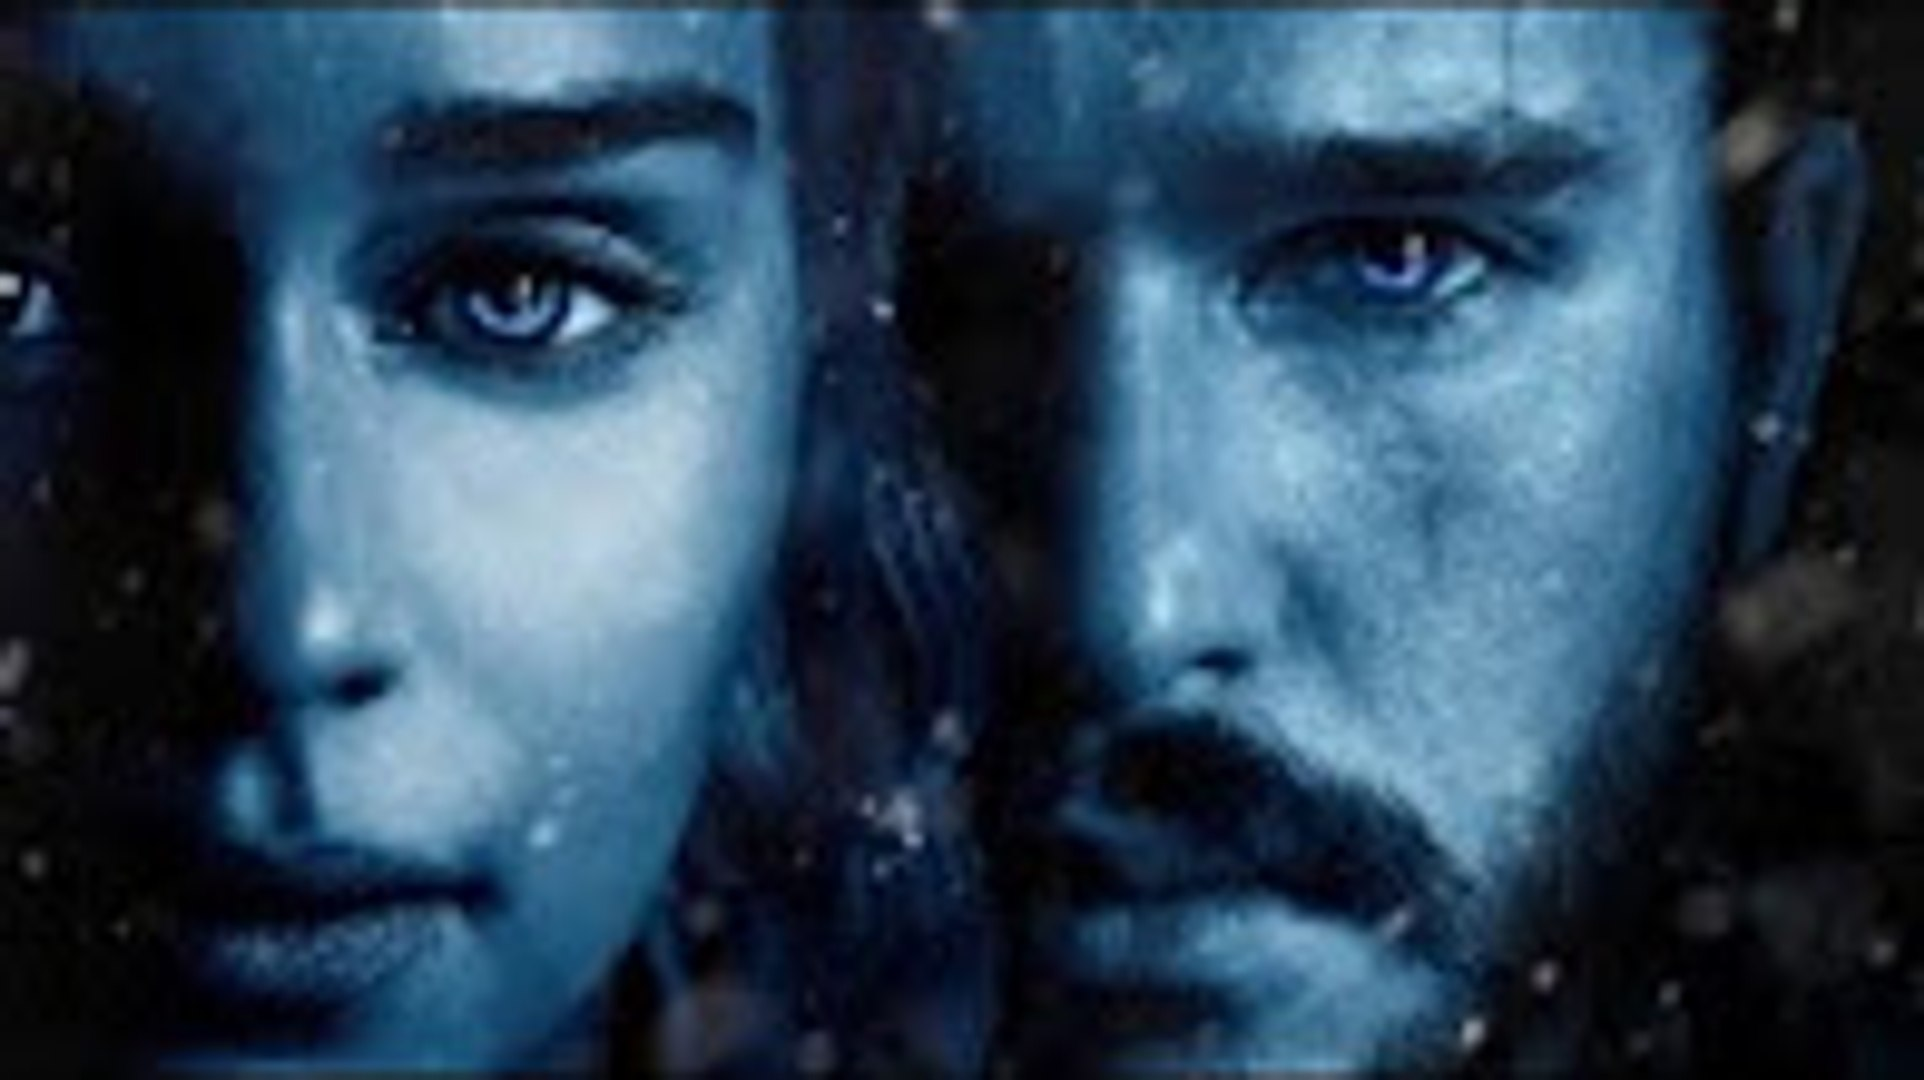 game of thrones 7x07 watch online free